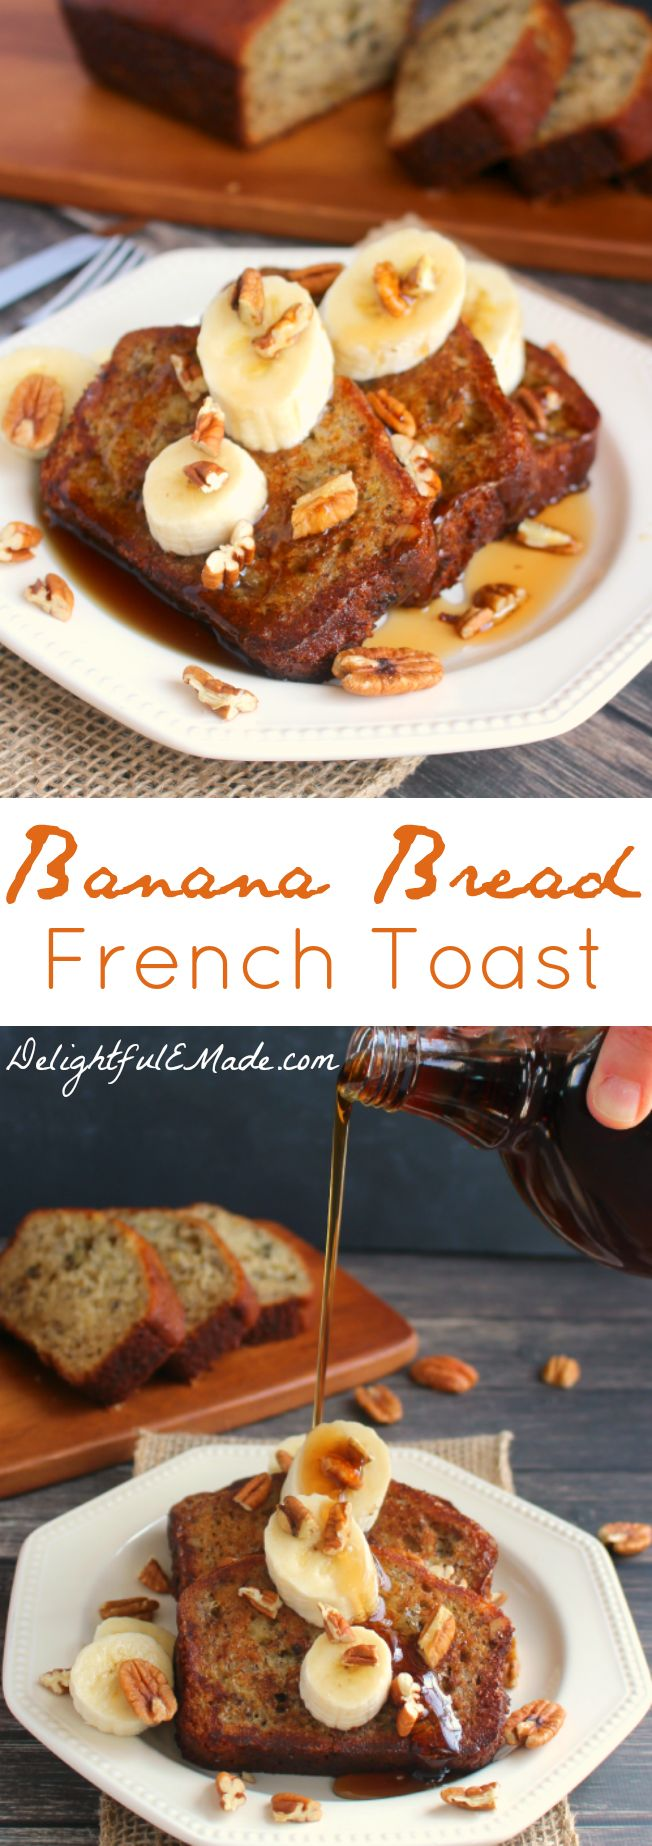 A Simple, Easy French Toast Recipe Made With Thick Slices Of Moist,  Delicious Banana